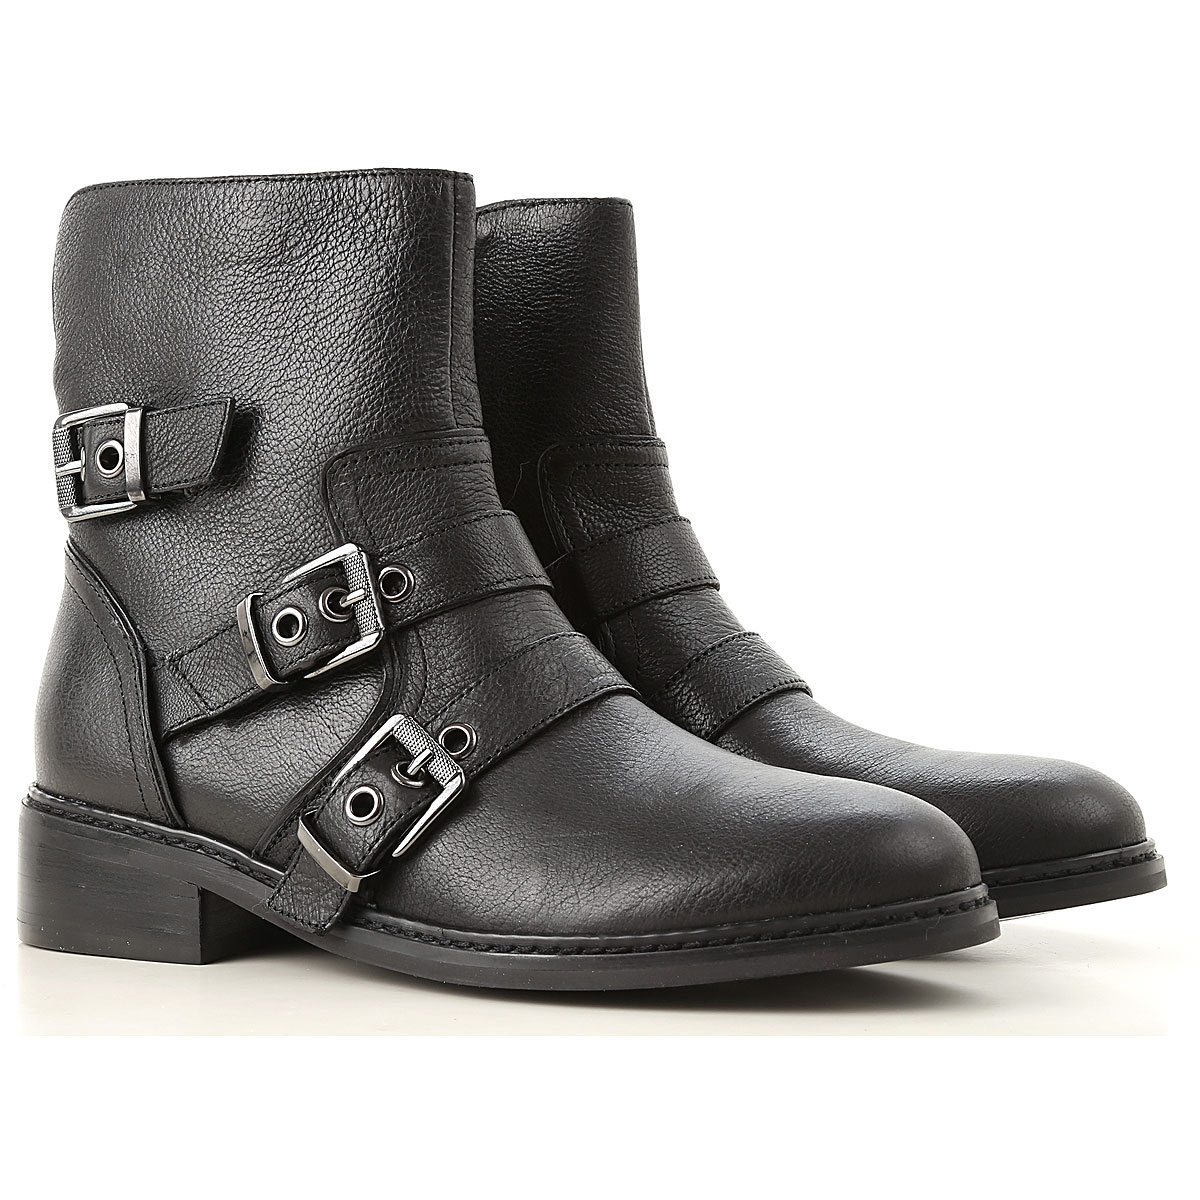 Kendall Kylie Boots for Women, Booties On Sale in Outlet, Black, Leather, 2019, 5.5 6 6.5 7